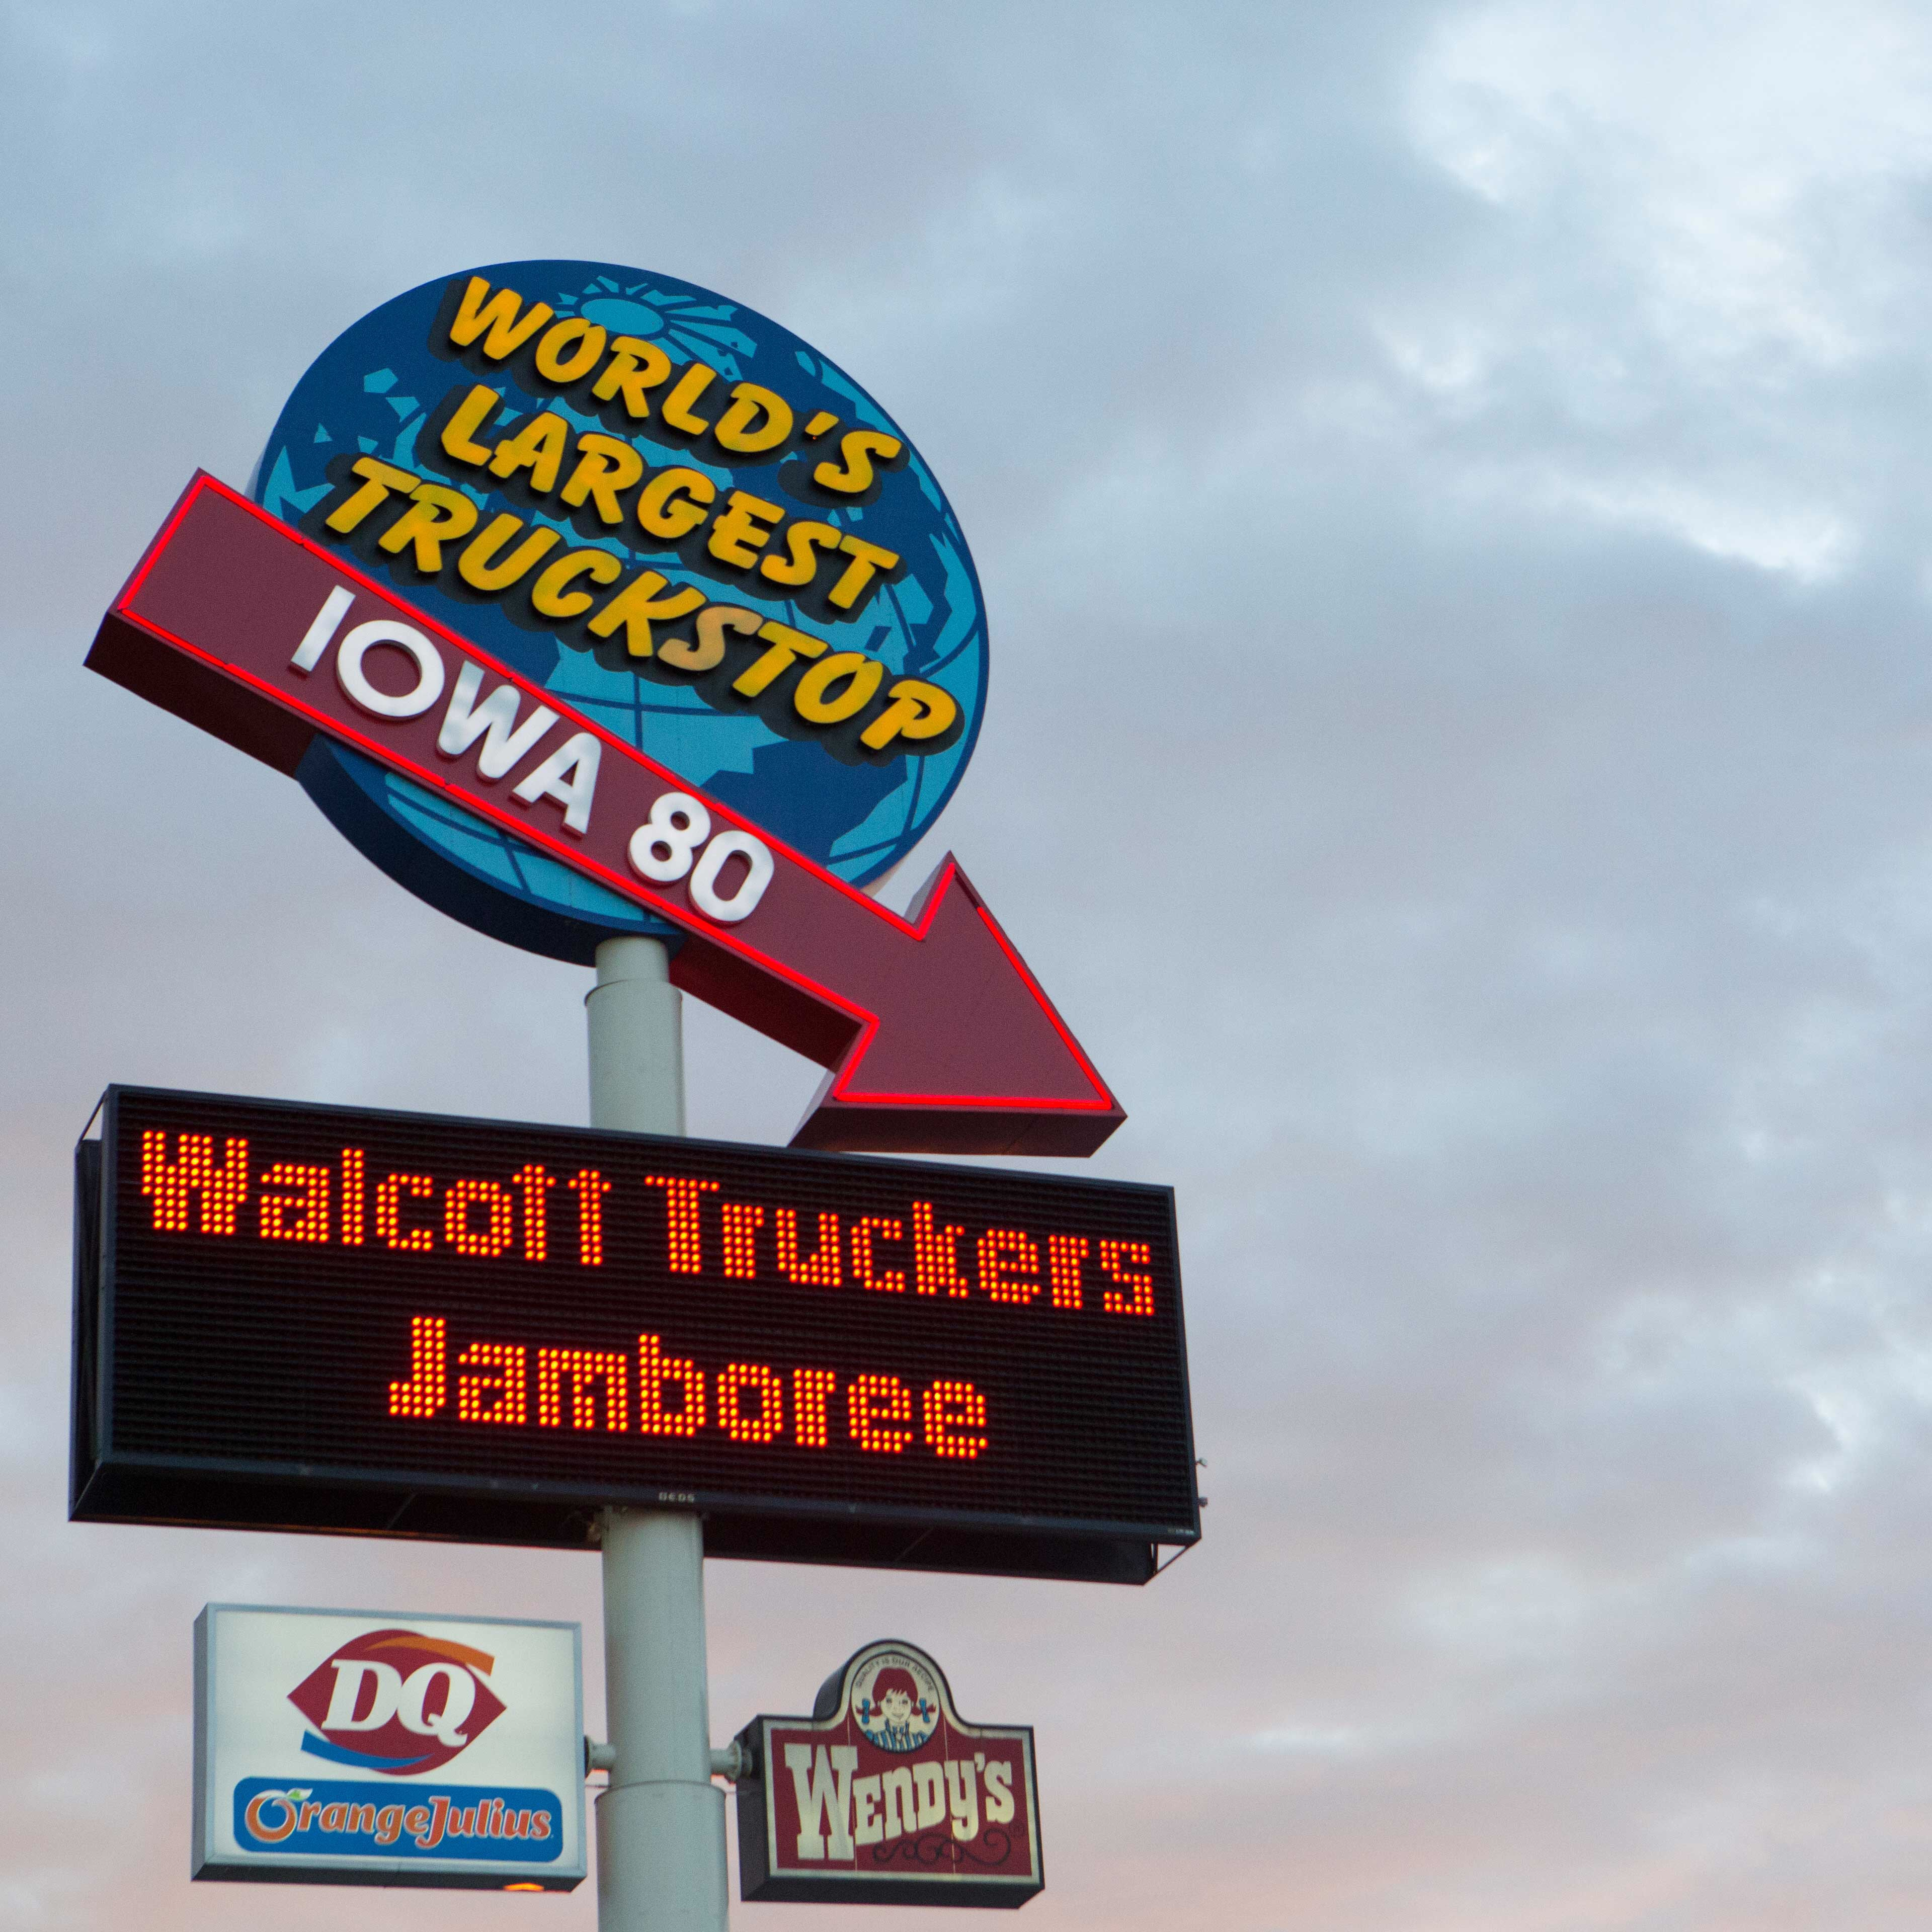 Near Iowa 80 Truck stop this week?  Head on over to the Truckers Jamboree!